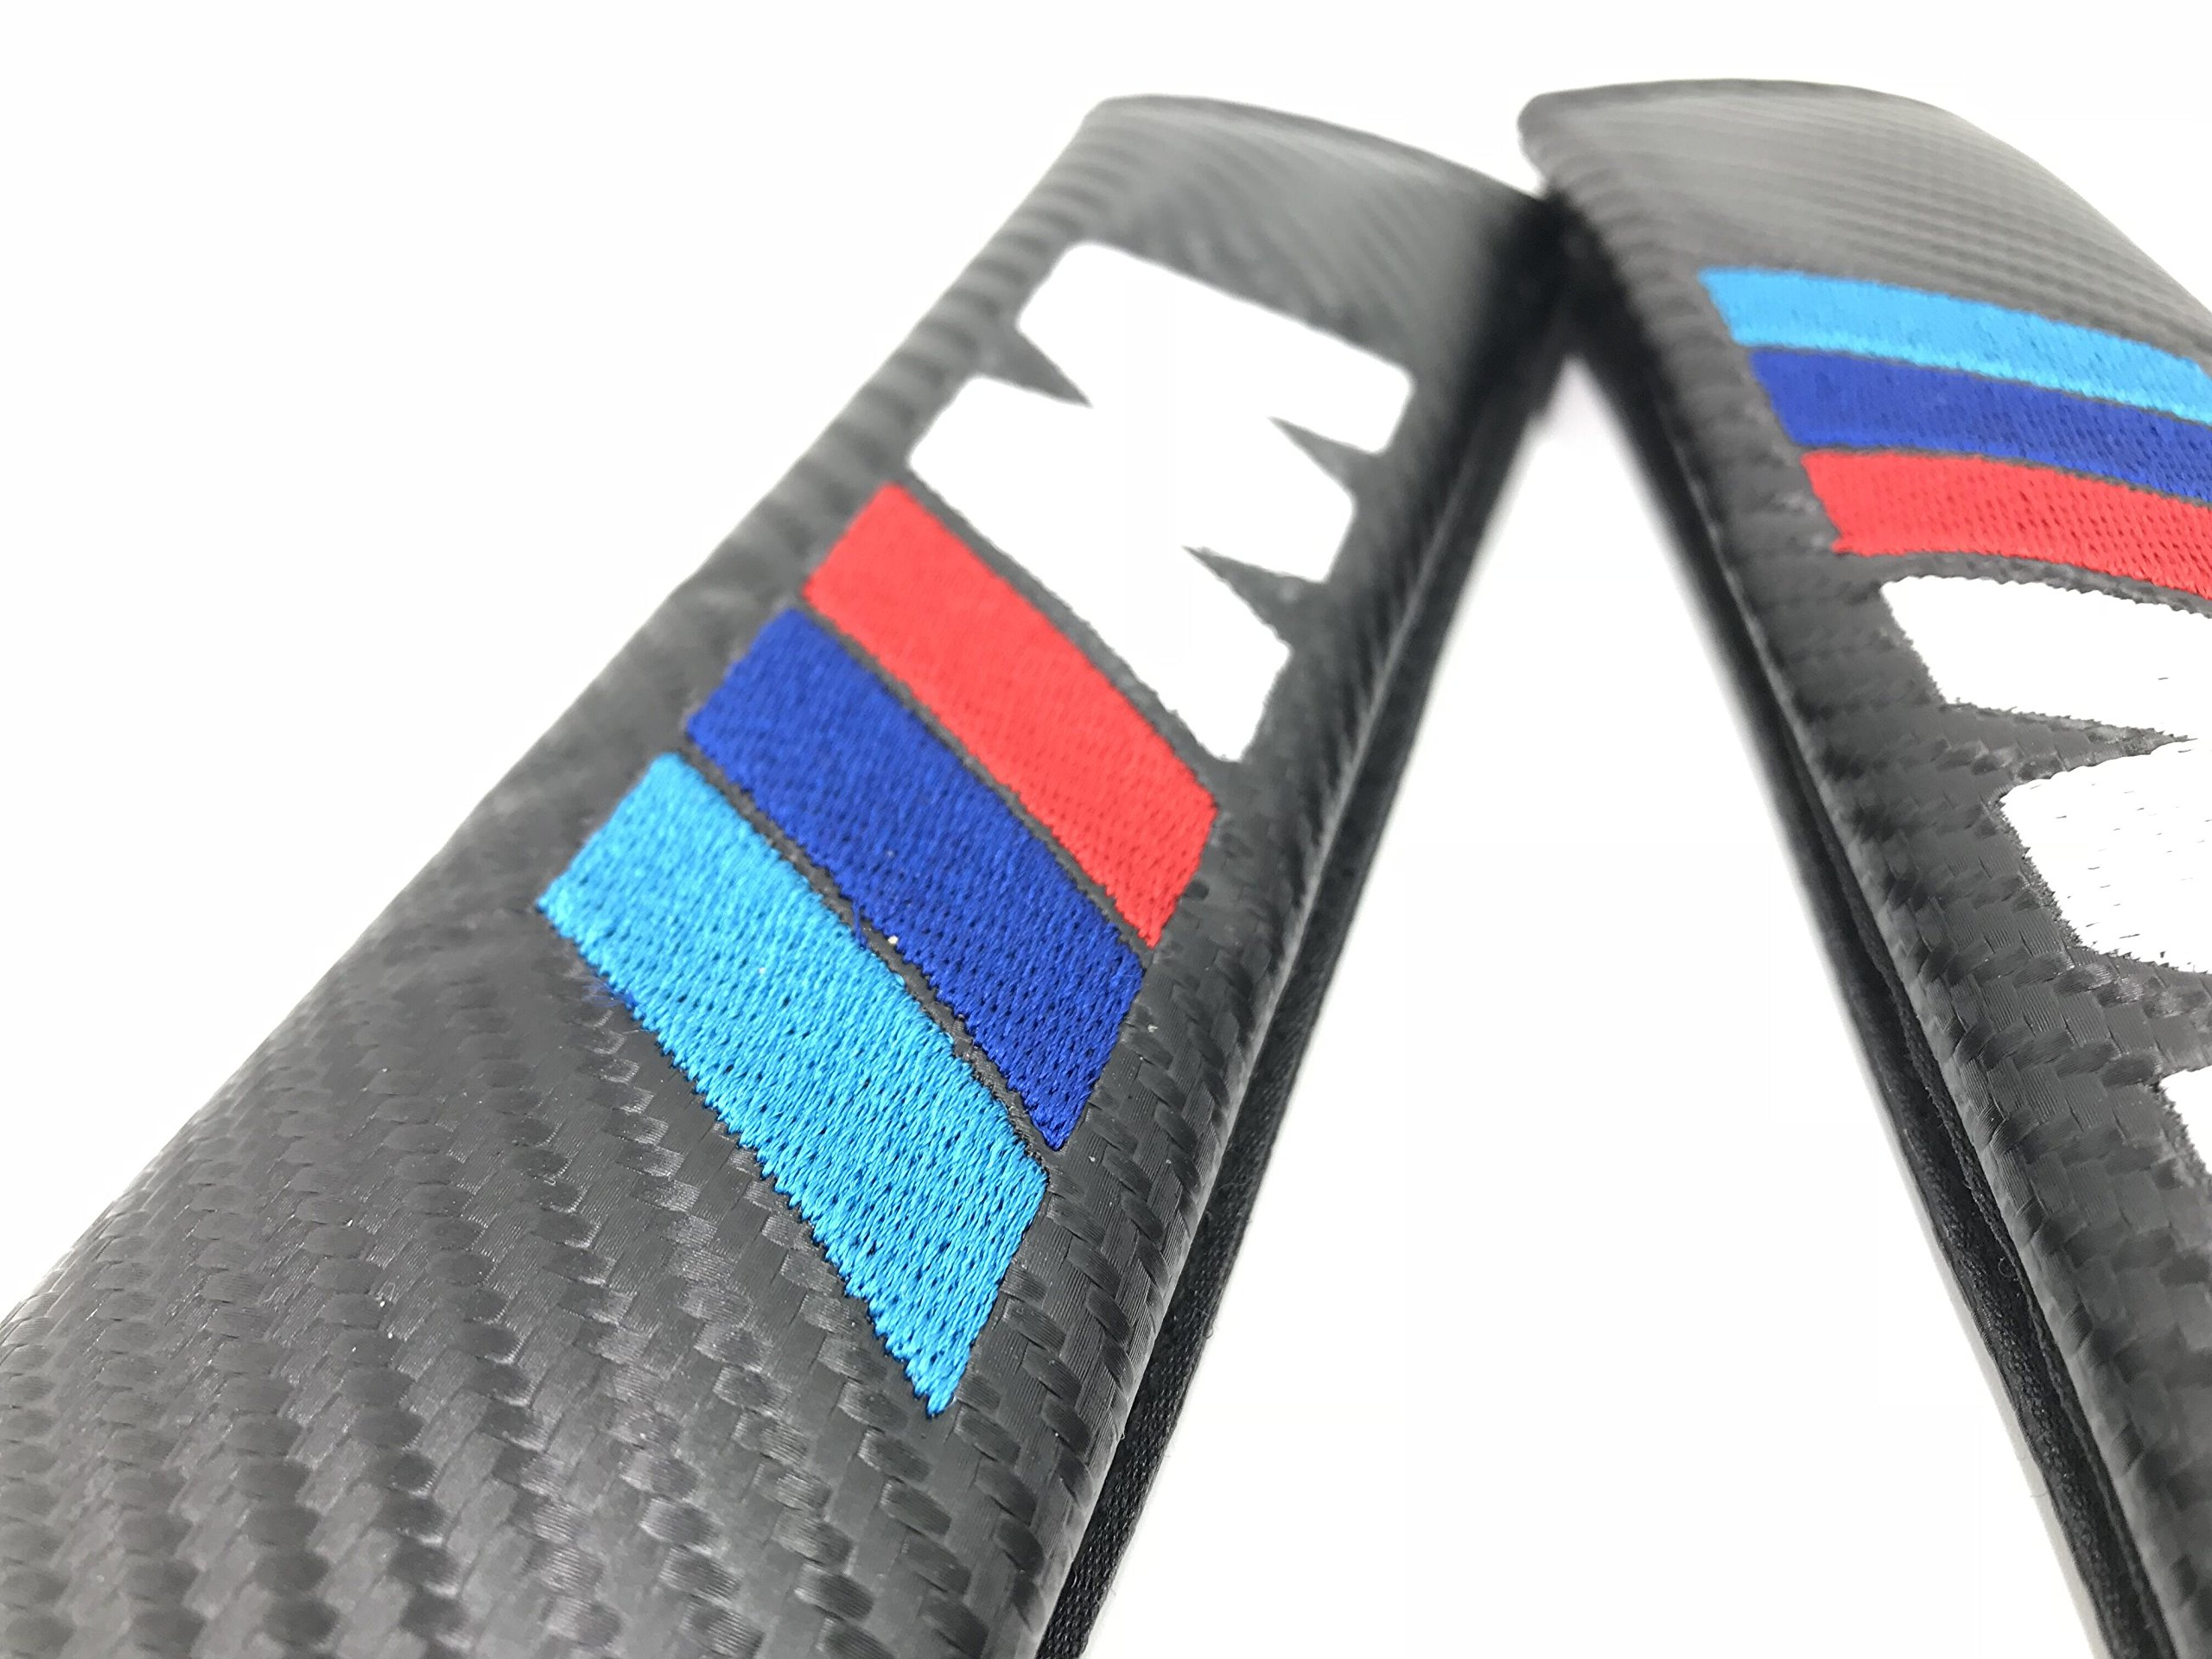 LLSW shop Car Automotive Advanced Carbon Fiber Seat Belt Pads Covers With Box and Gift Card (with M Logo)